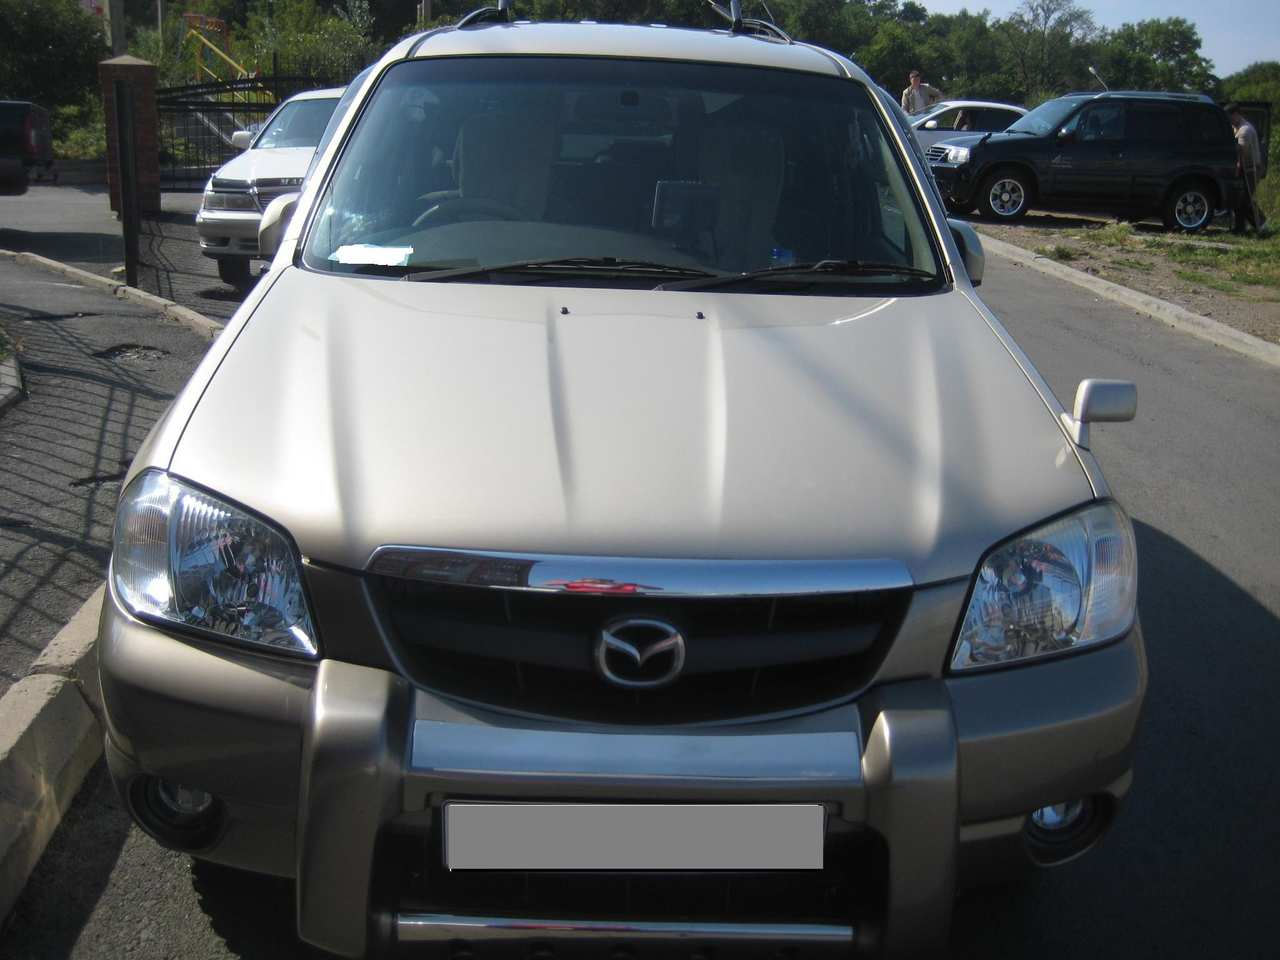 Used 2001 mazda tribute photos 3000cc gasoline automatic for sale